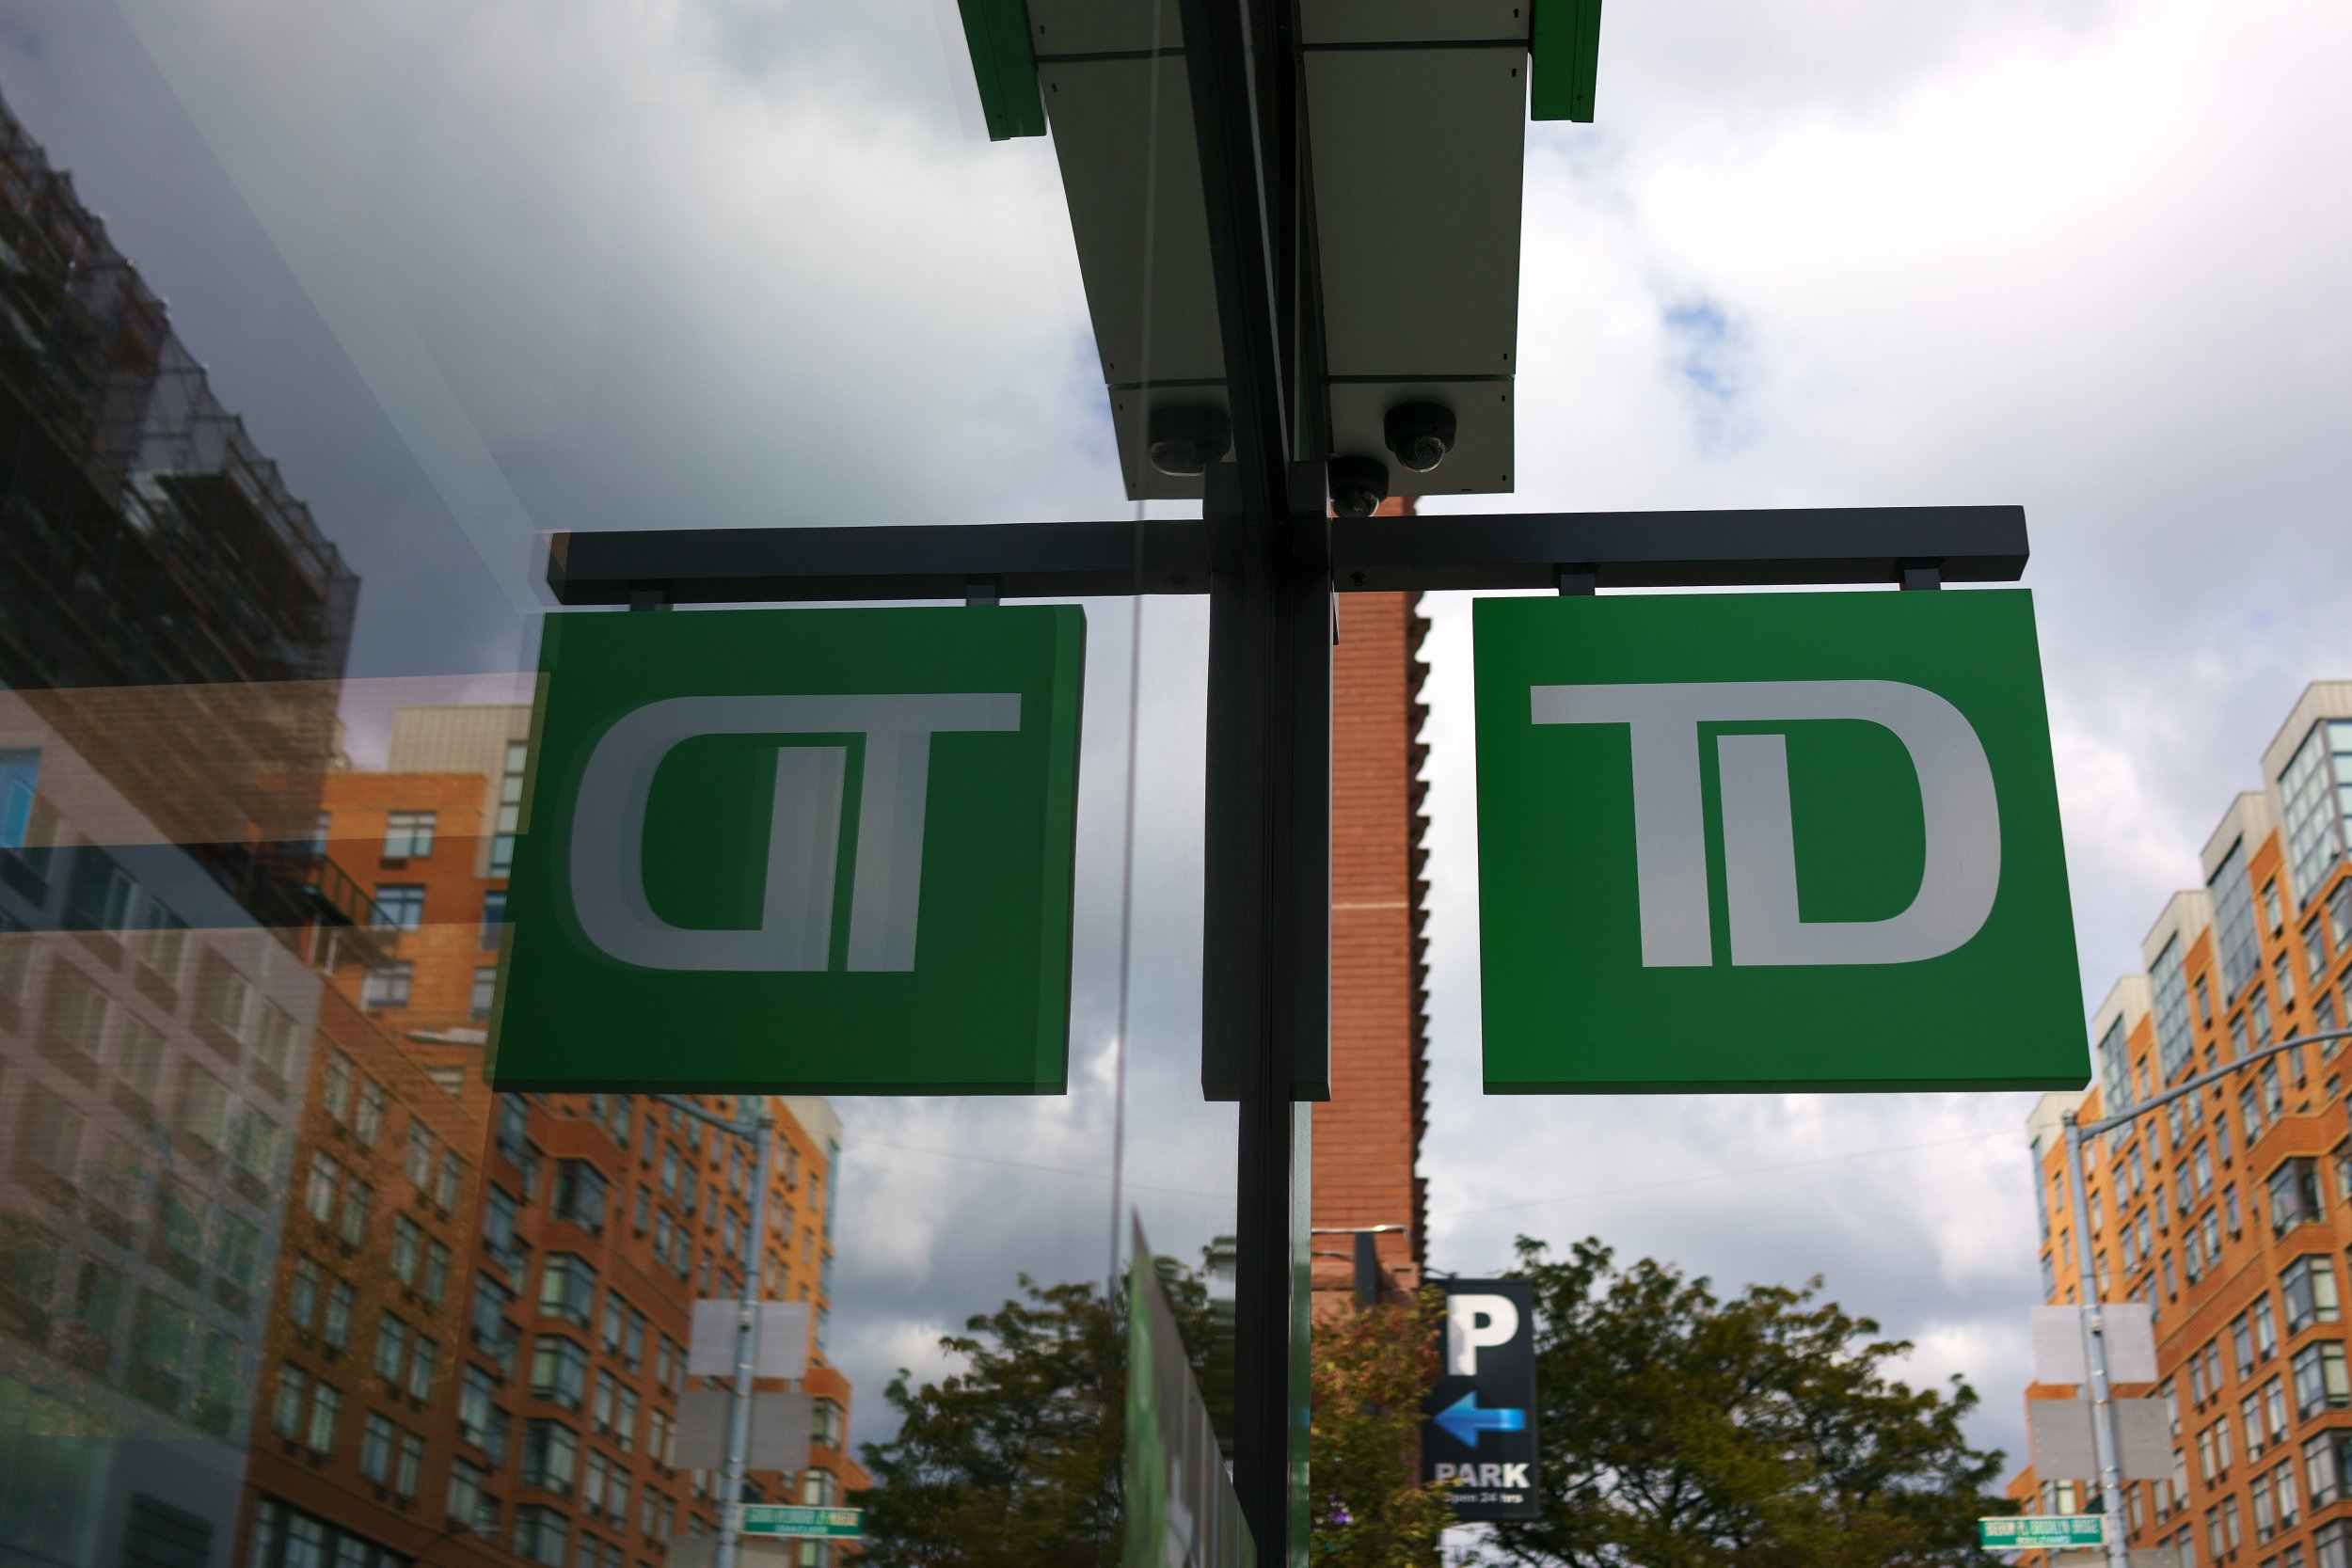 TD Bank Website Outage: App Down and Not Working As Users